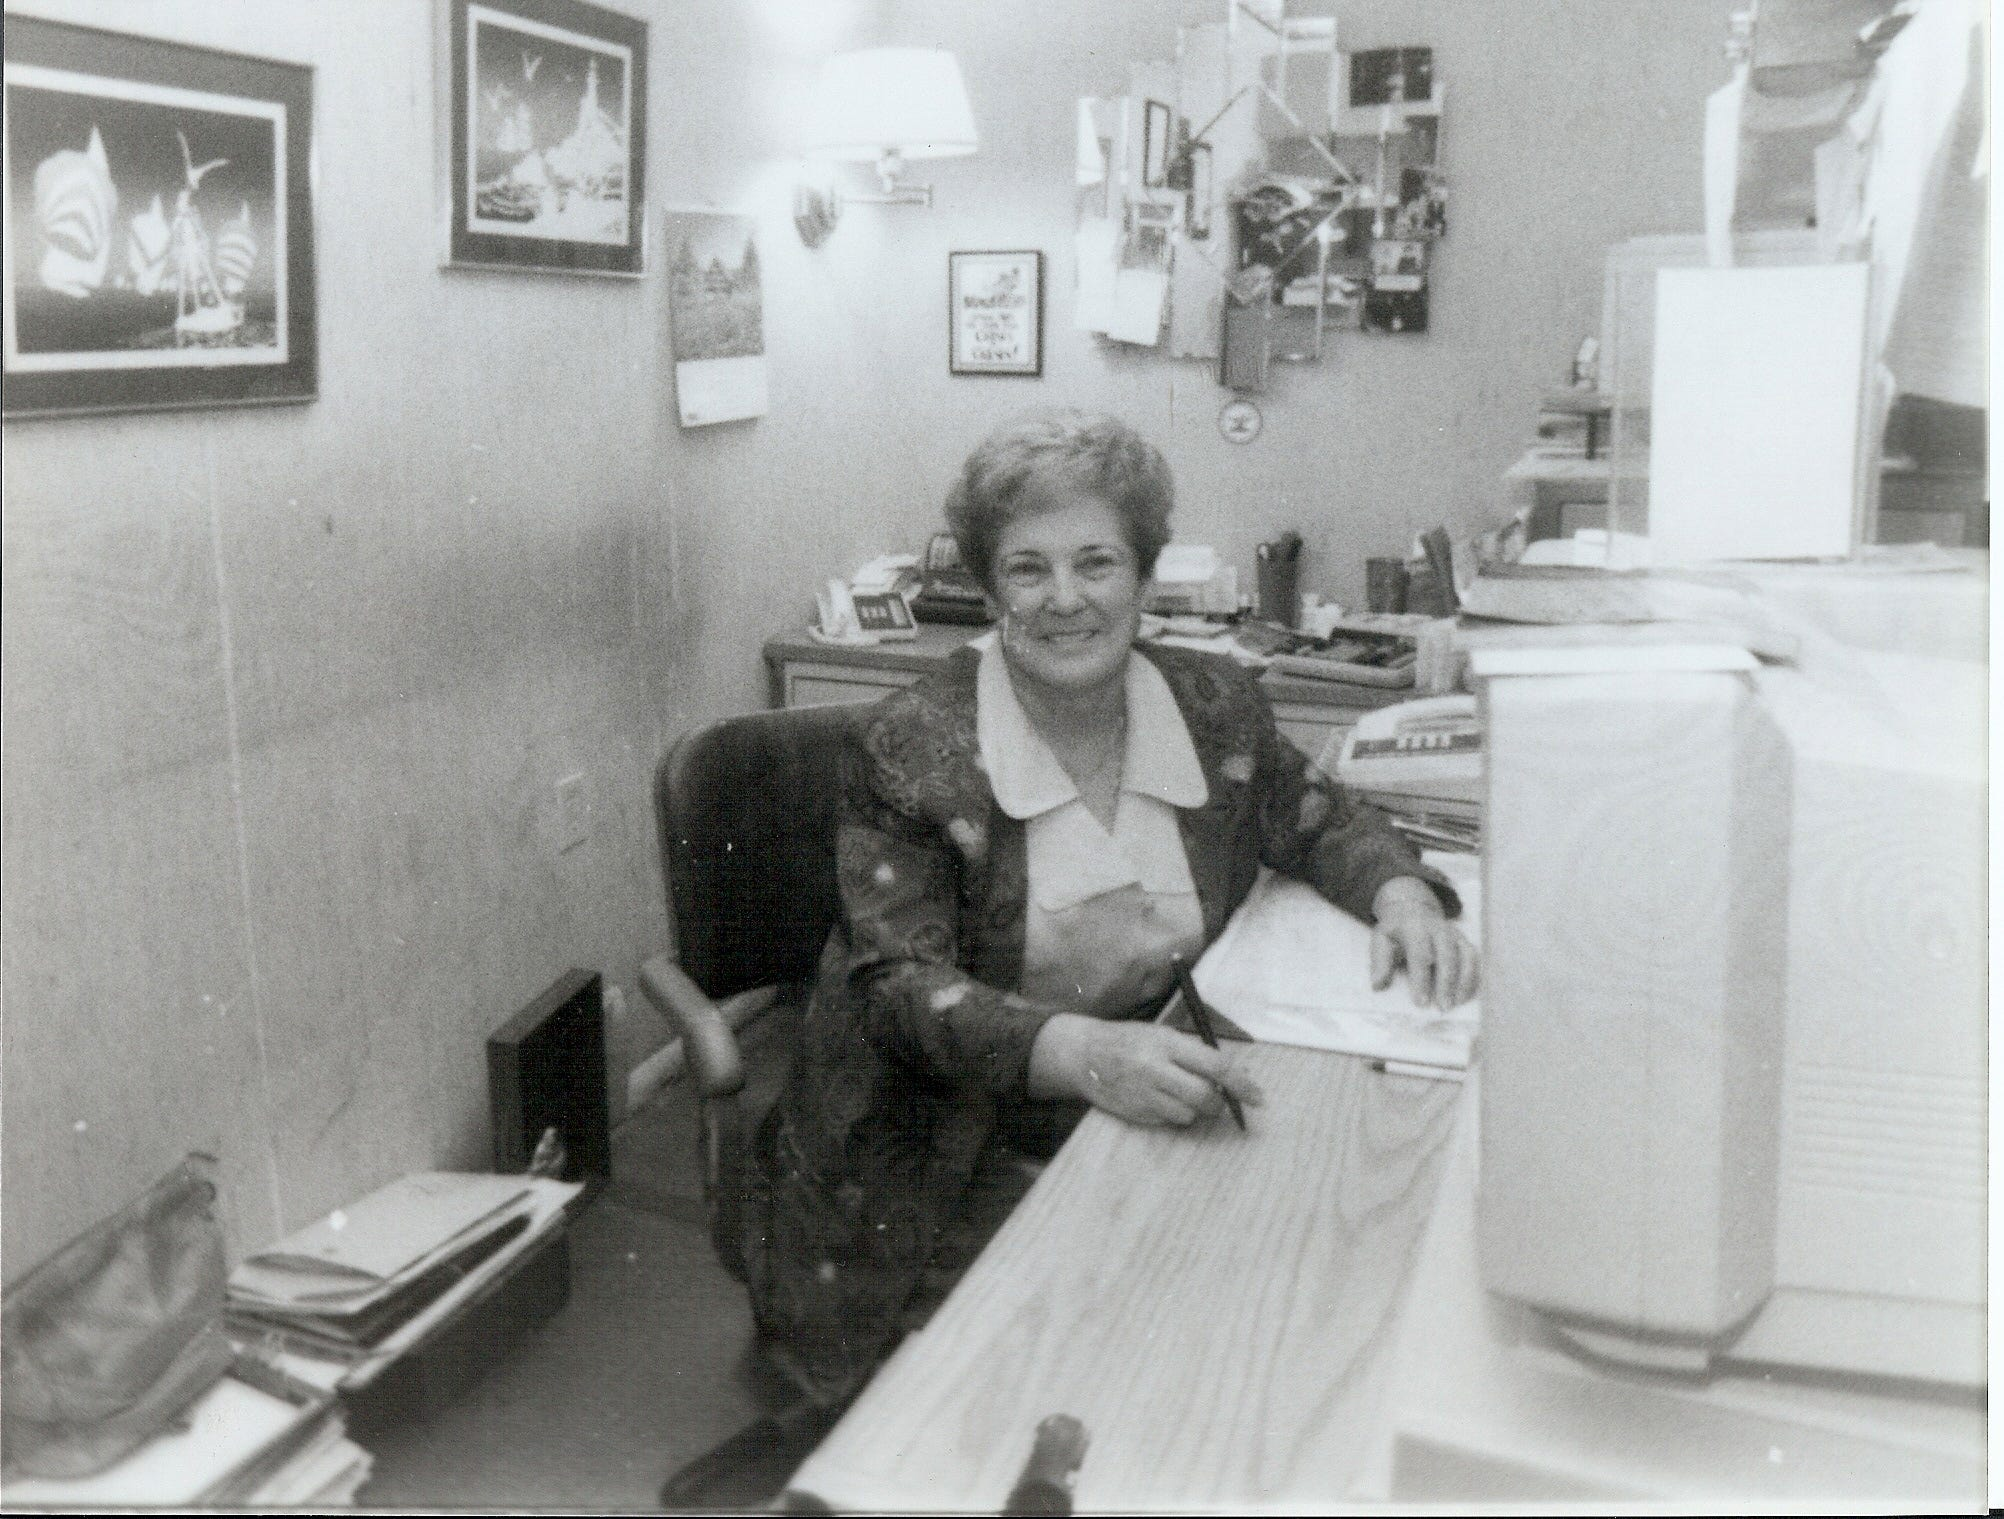 Evelyn Dickerson in her office at Wynn's Market when it was on Fifth Avenue South. She's now 94 and still works at Wynn's Market on Ninth Street three days a week. She's retiring in May after more than 60 years of working there as a bookkeeper.